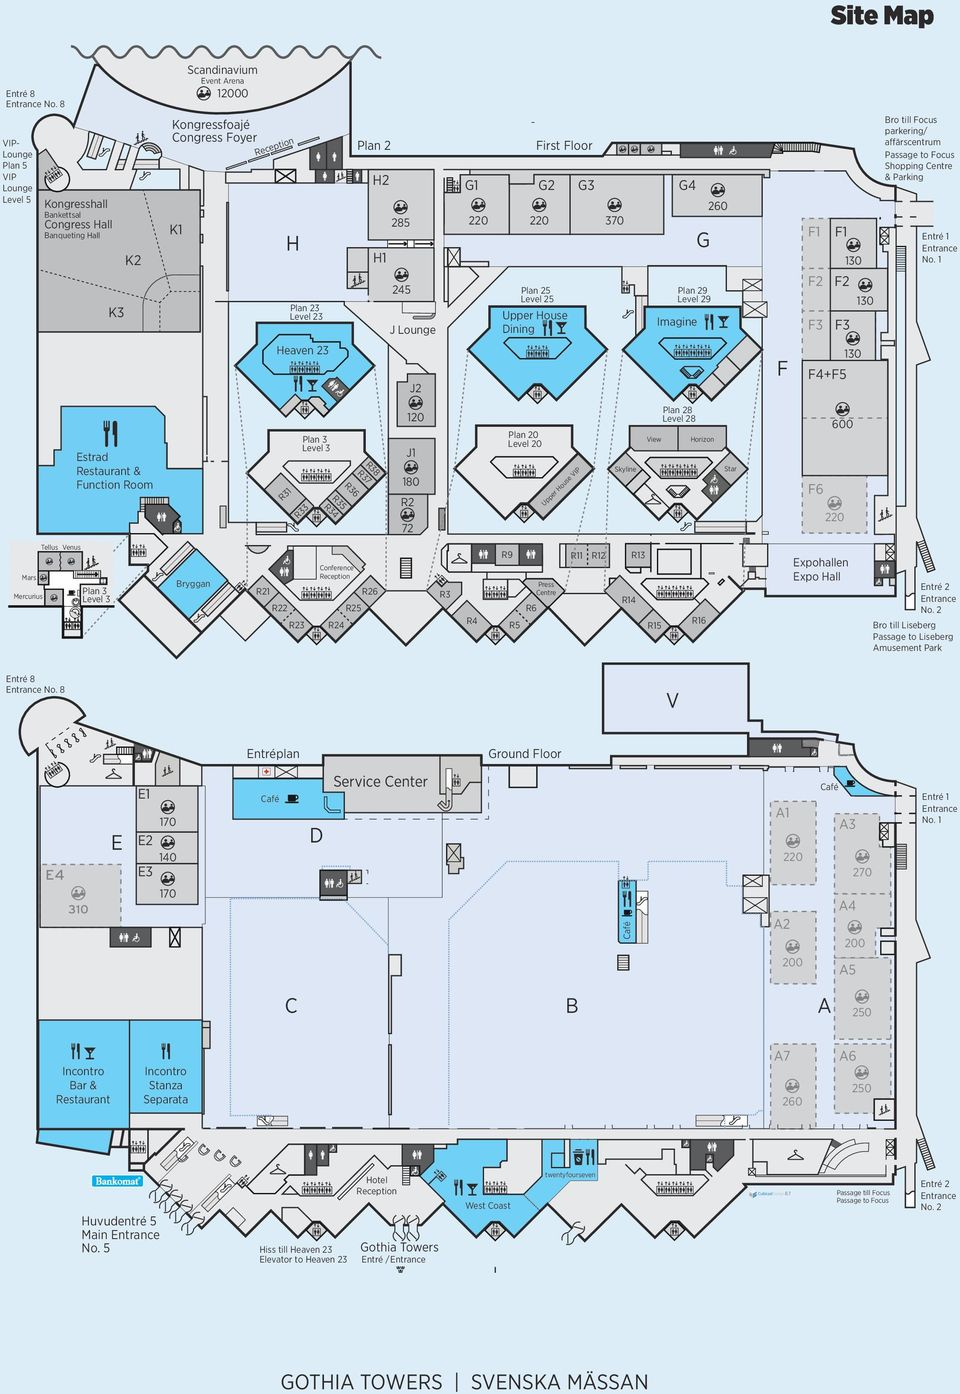 H2 H1 Orienteringskarta Site Map 285 245 J Lounge G1 220 First Floor G2 220 Plan 25 Level 25 Upper House Dining G3 370 G4 Imagine G Plan 29 Level 29 260 F1 F2 F3 Site Map F1 F2 F3 130 130 Bro till